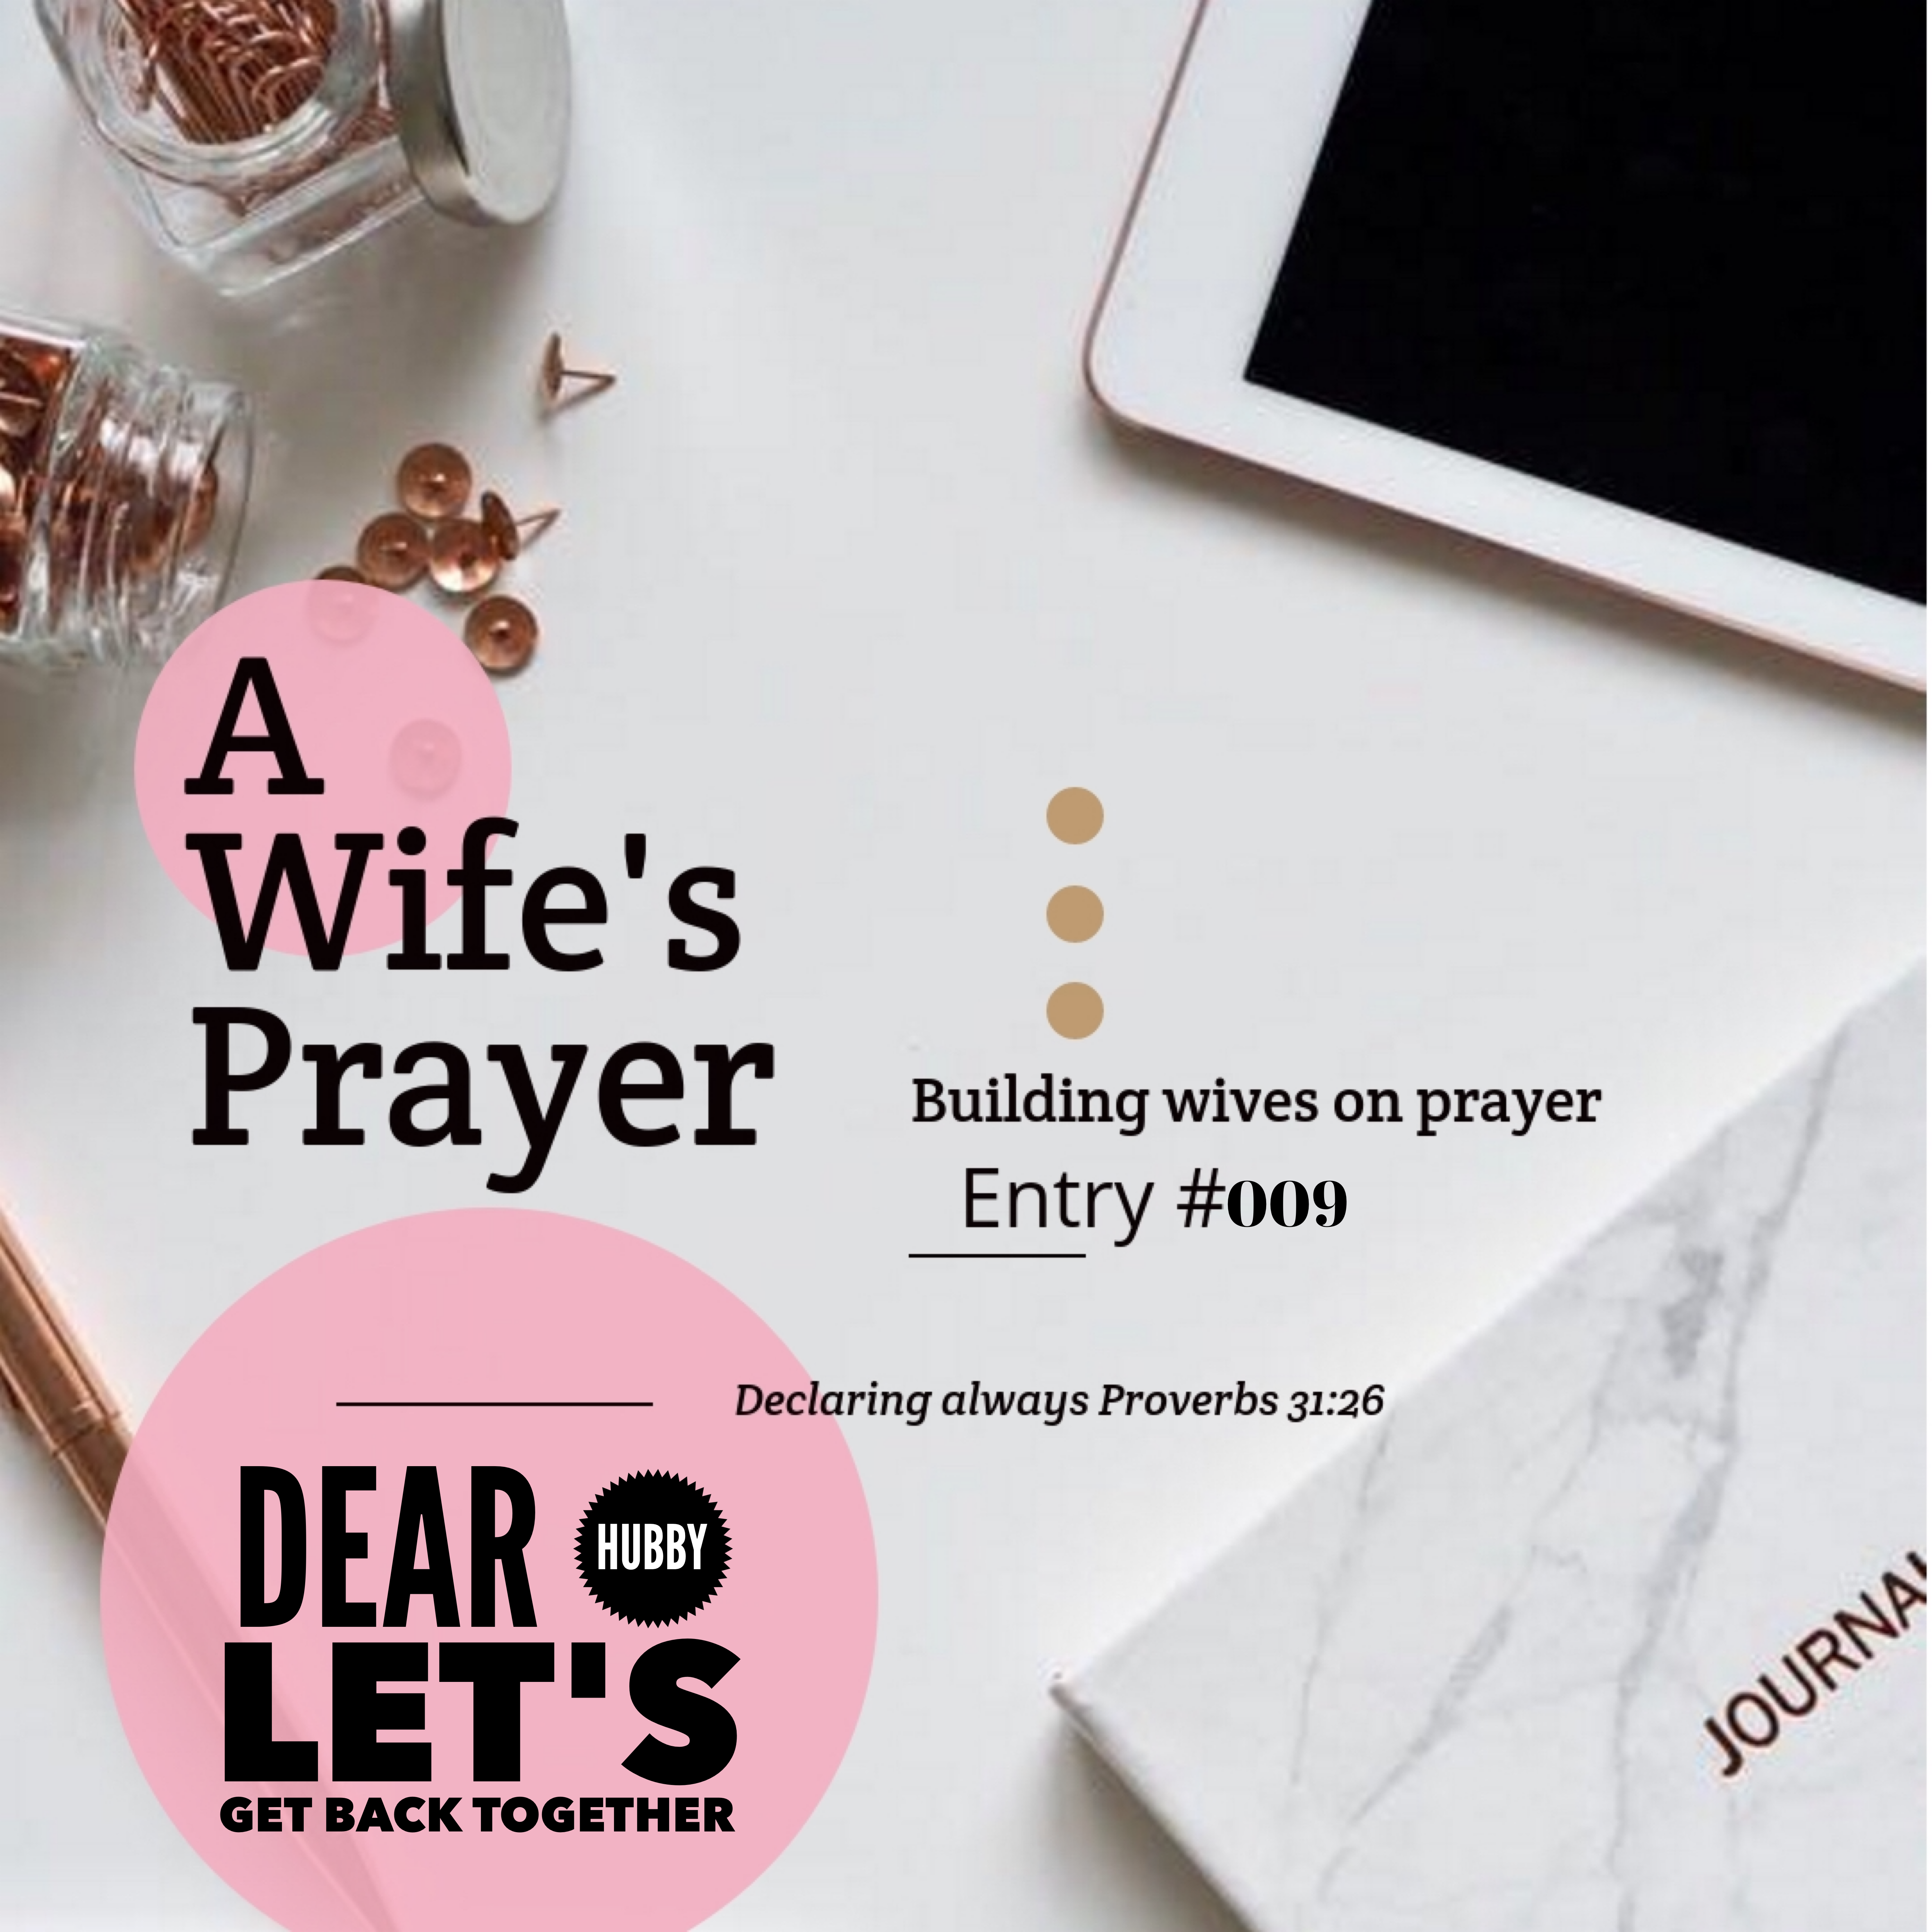 https://mendthevow.com/2019/30/dear-hubby-lets-get-back-together/in-the-Custom-structure-text-box./